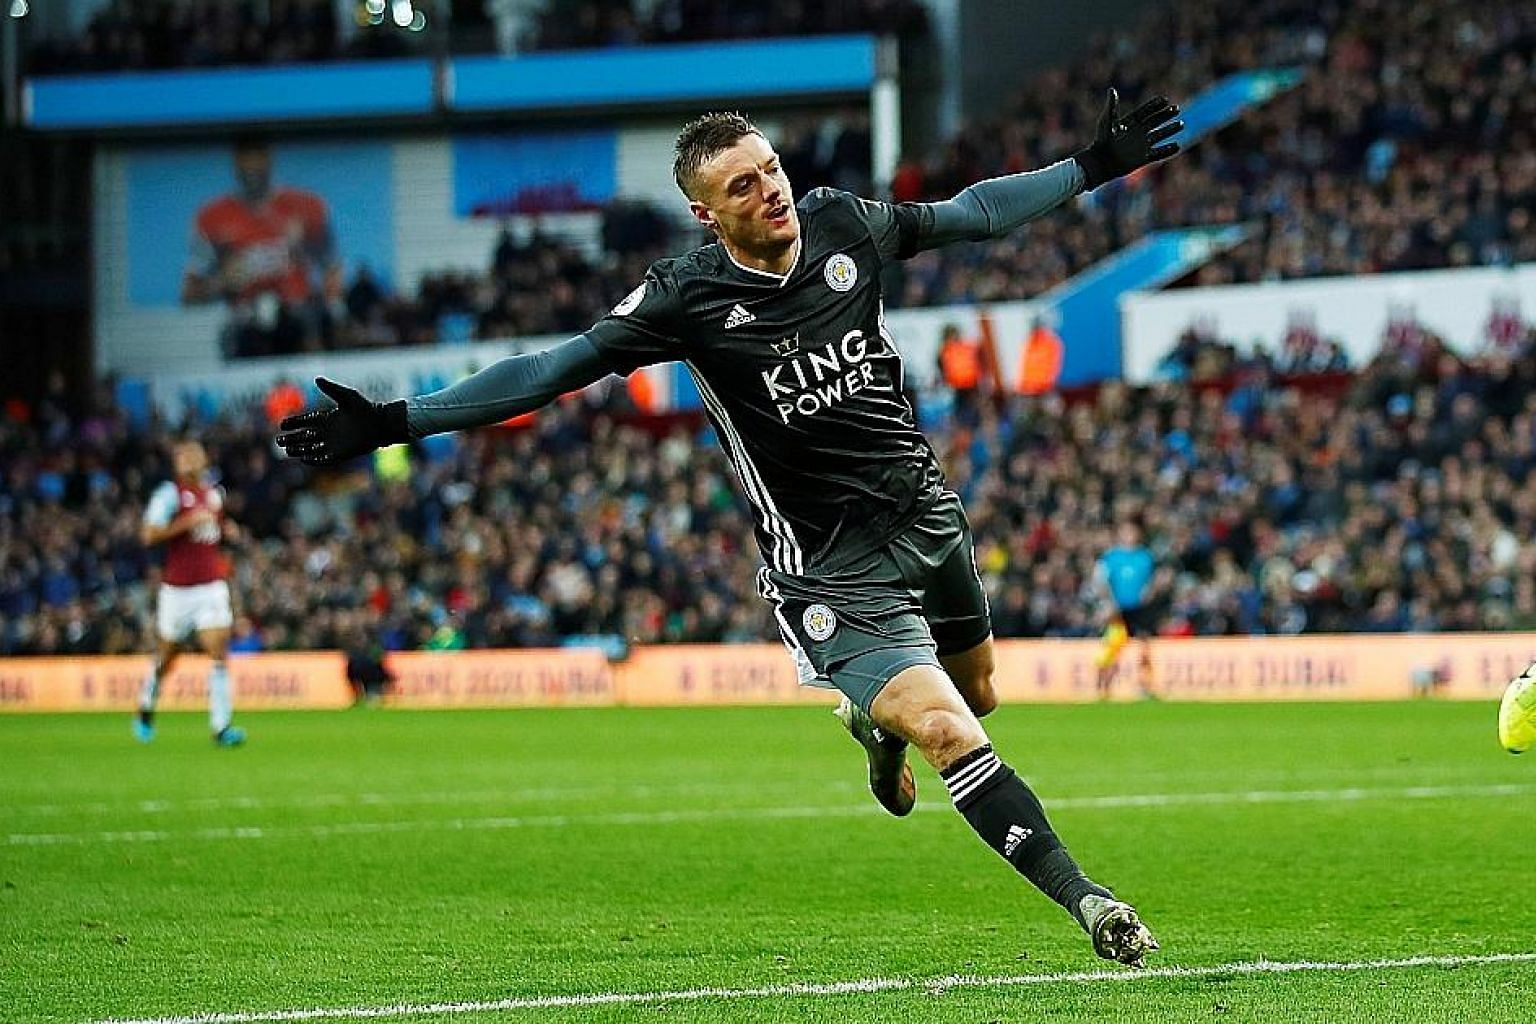 Jamie Vardy wheeling away after rounding off Leicester's 4-1 league win over Aston Villa at Villa Park on Sunday with his second goal.